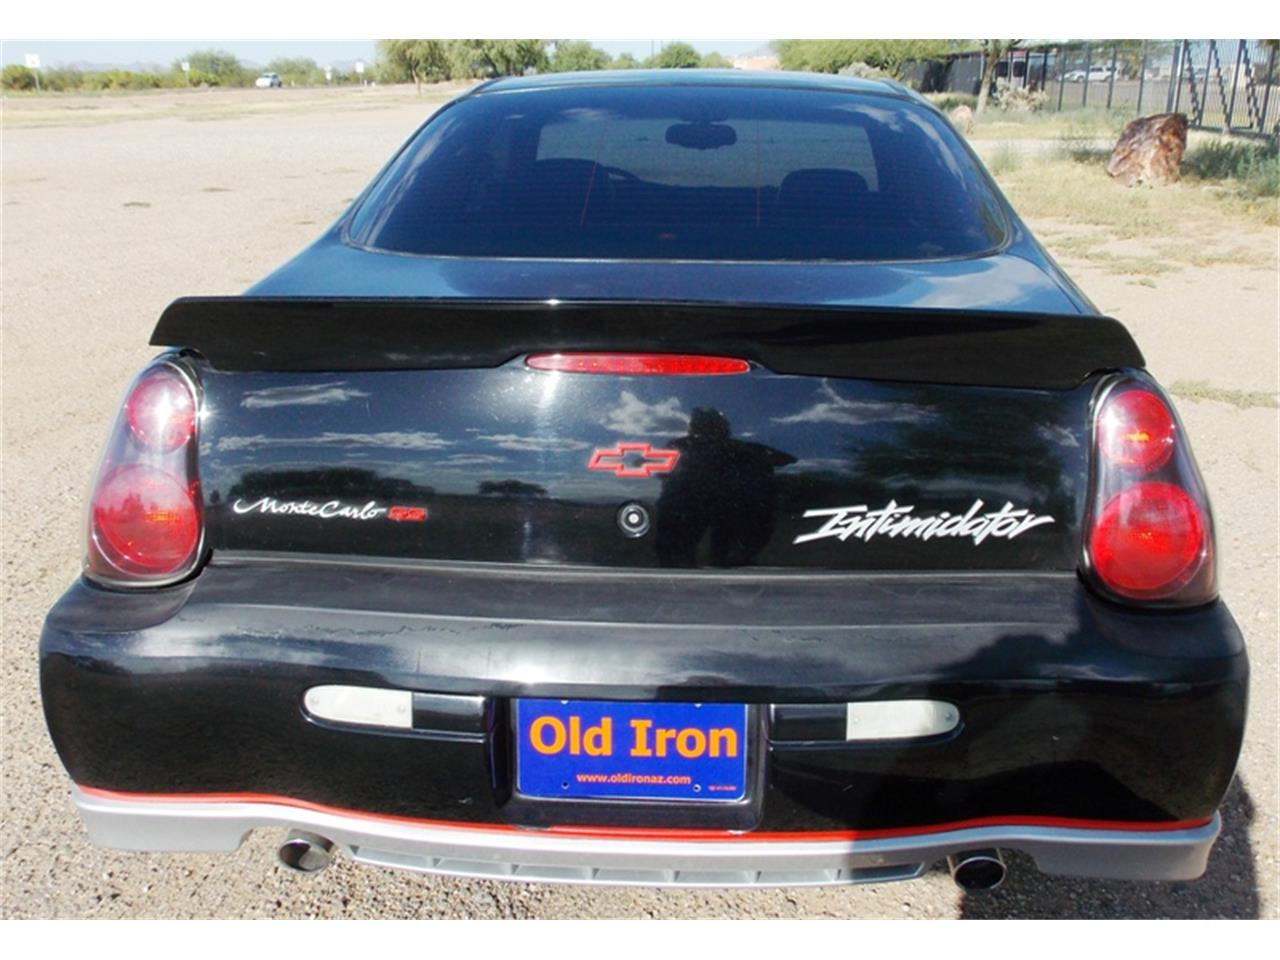 Large Picture of '02 Chevrolet Monte Carlo SS Intimidator located in AZ - Arizona - $10,500.00 - QWDS